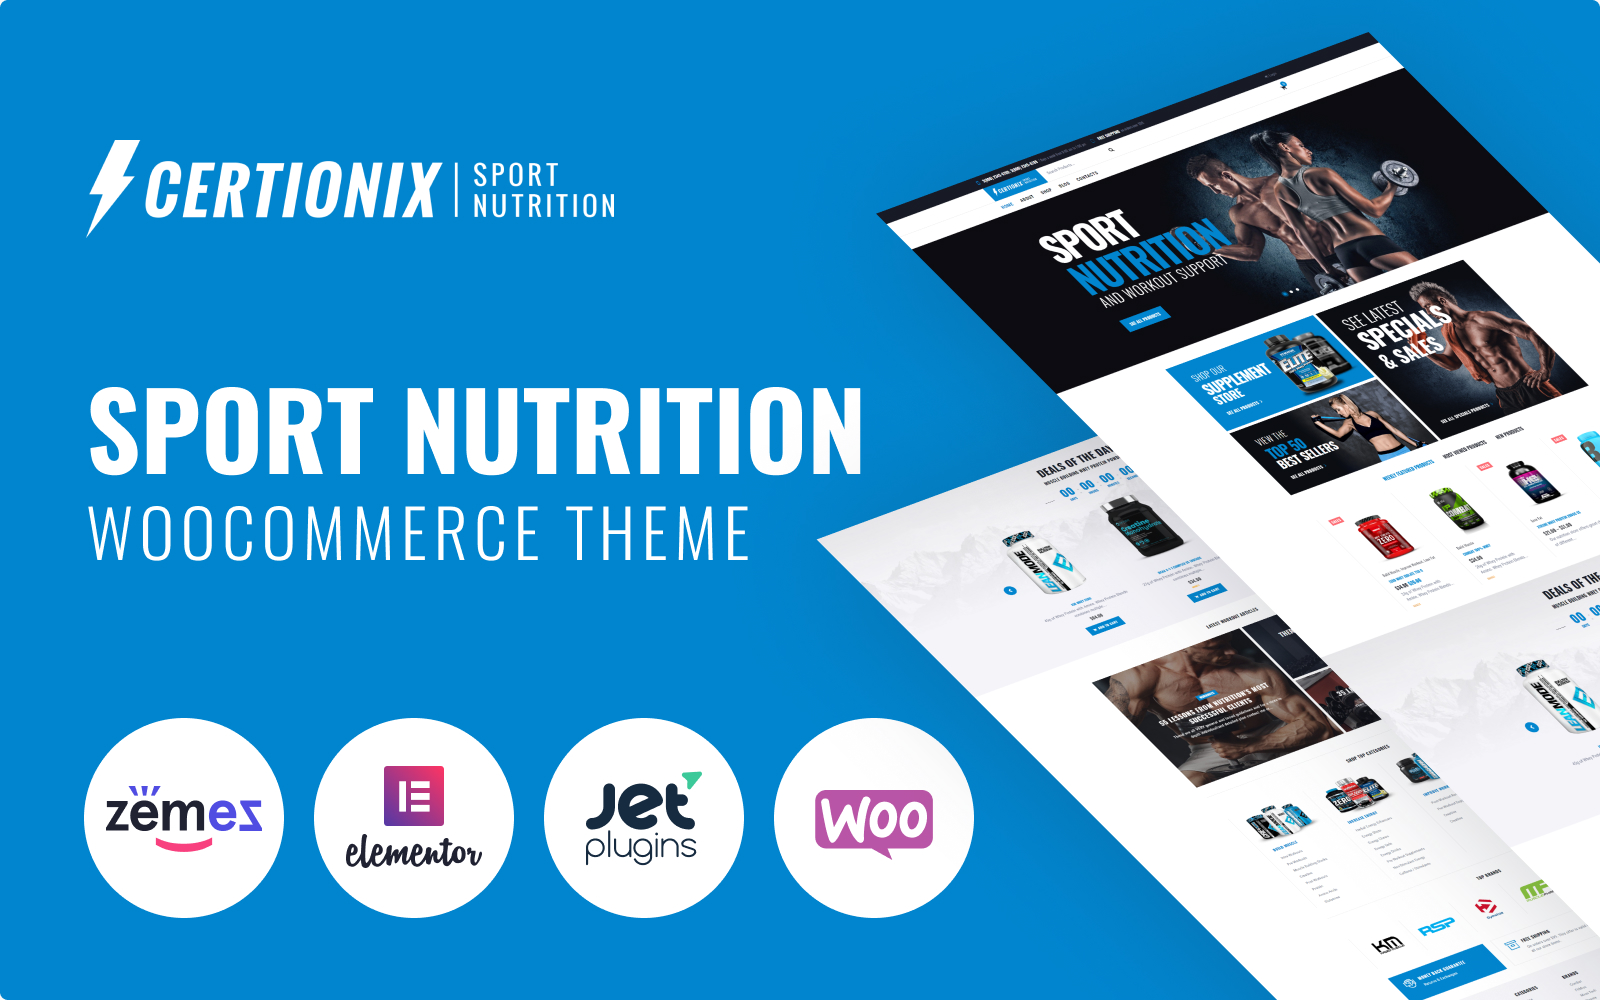 Responsywny motyw WooCommerce Certionix - Sport Nutrition Website Template with Woocommerce and Elementor #65870